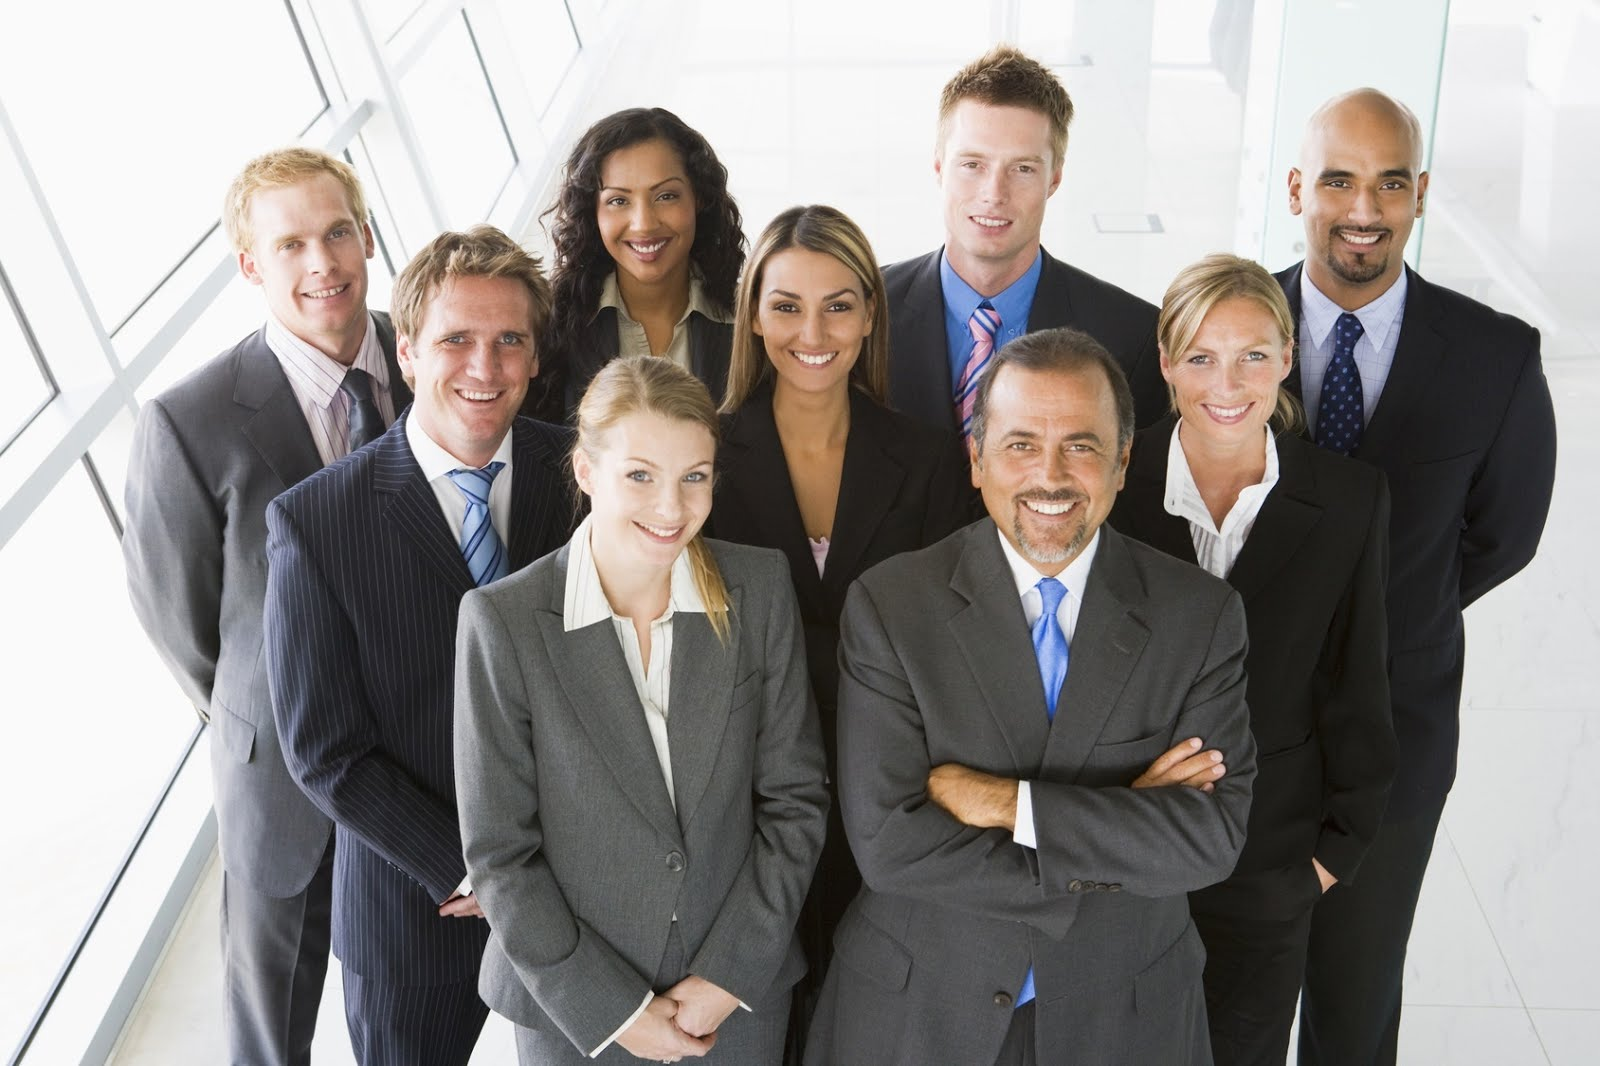 How To Select Quality Employees for your Company